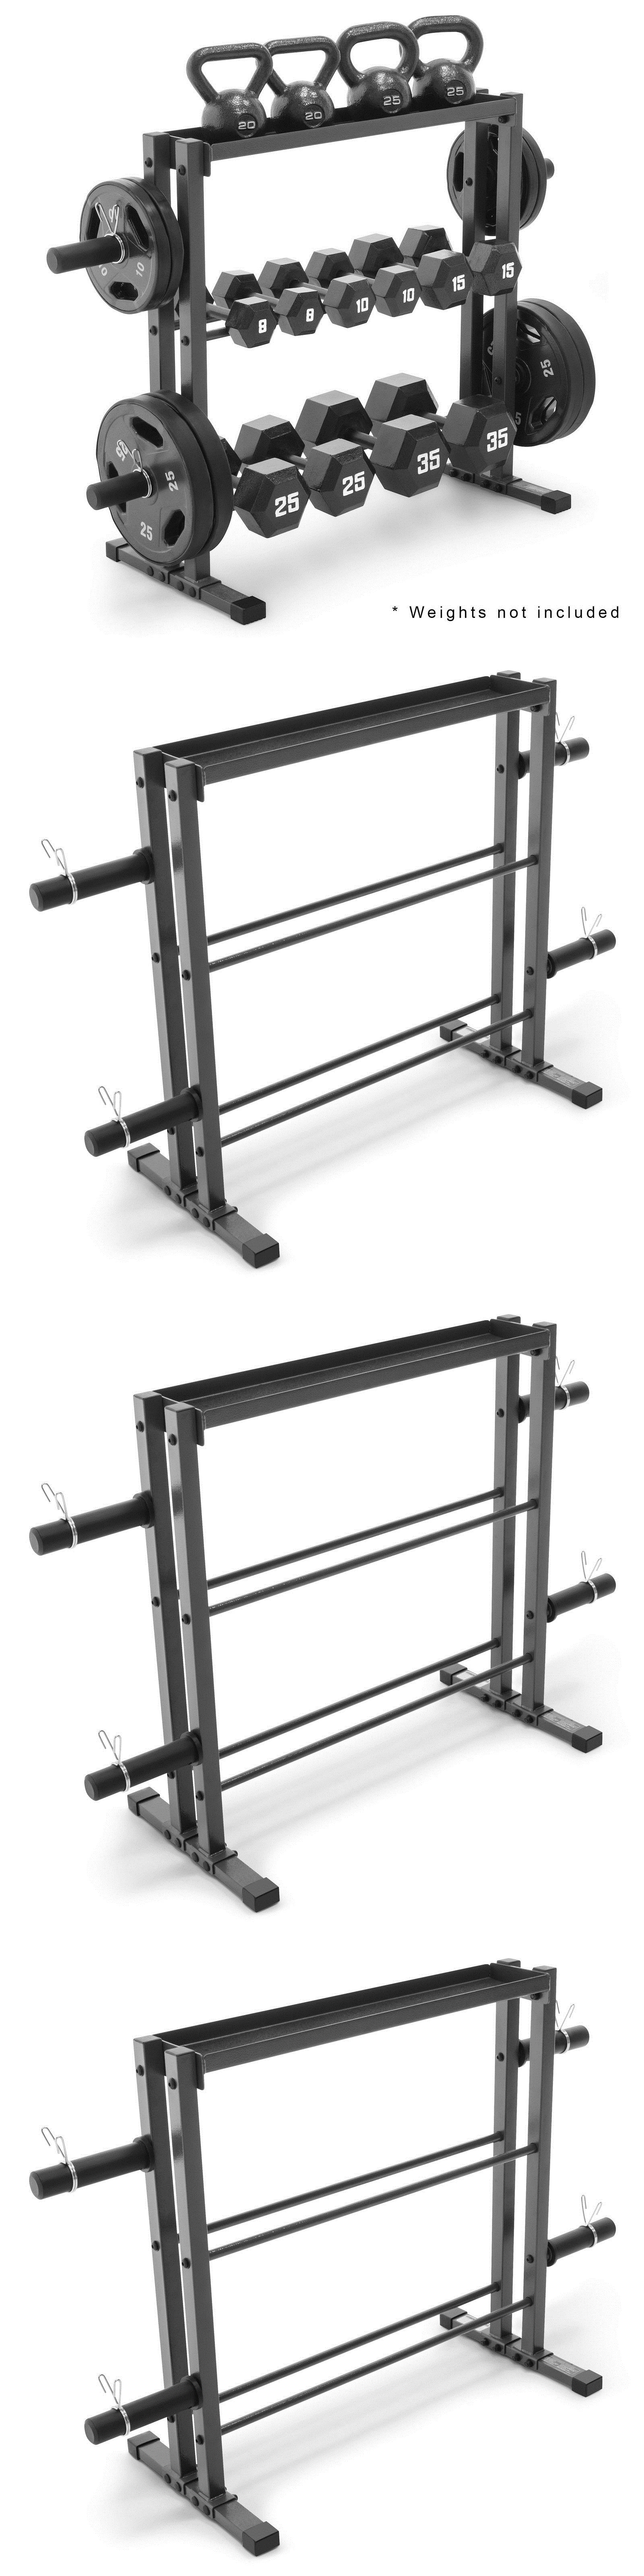 sport stand rack barbell fitness equipment products by azfitnessequipmentcom shop storage made from marbo gym and